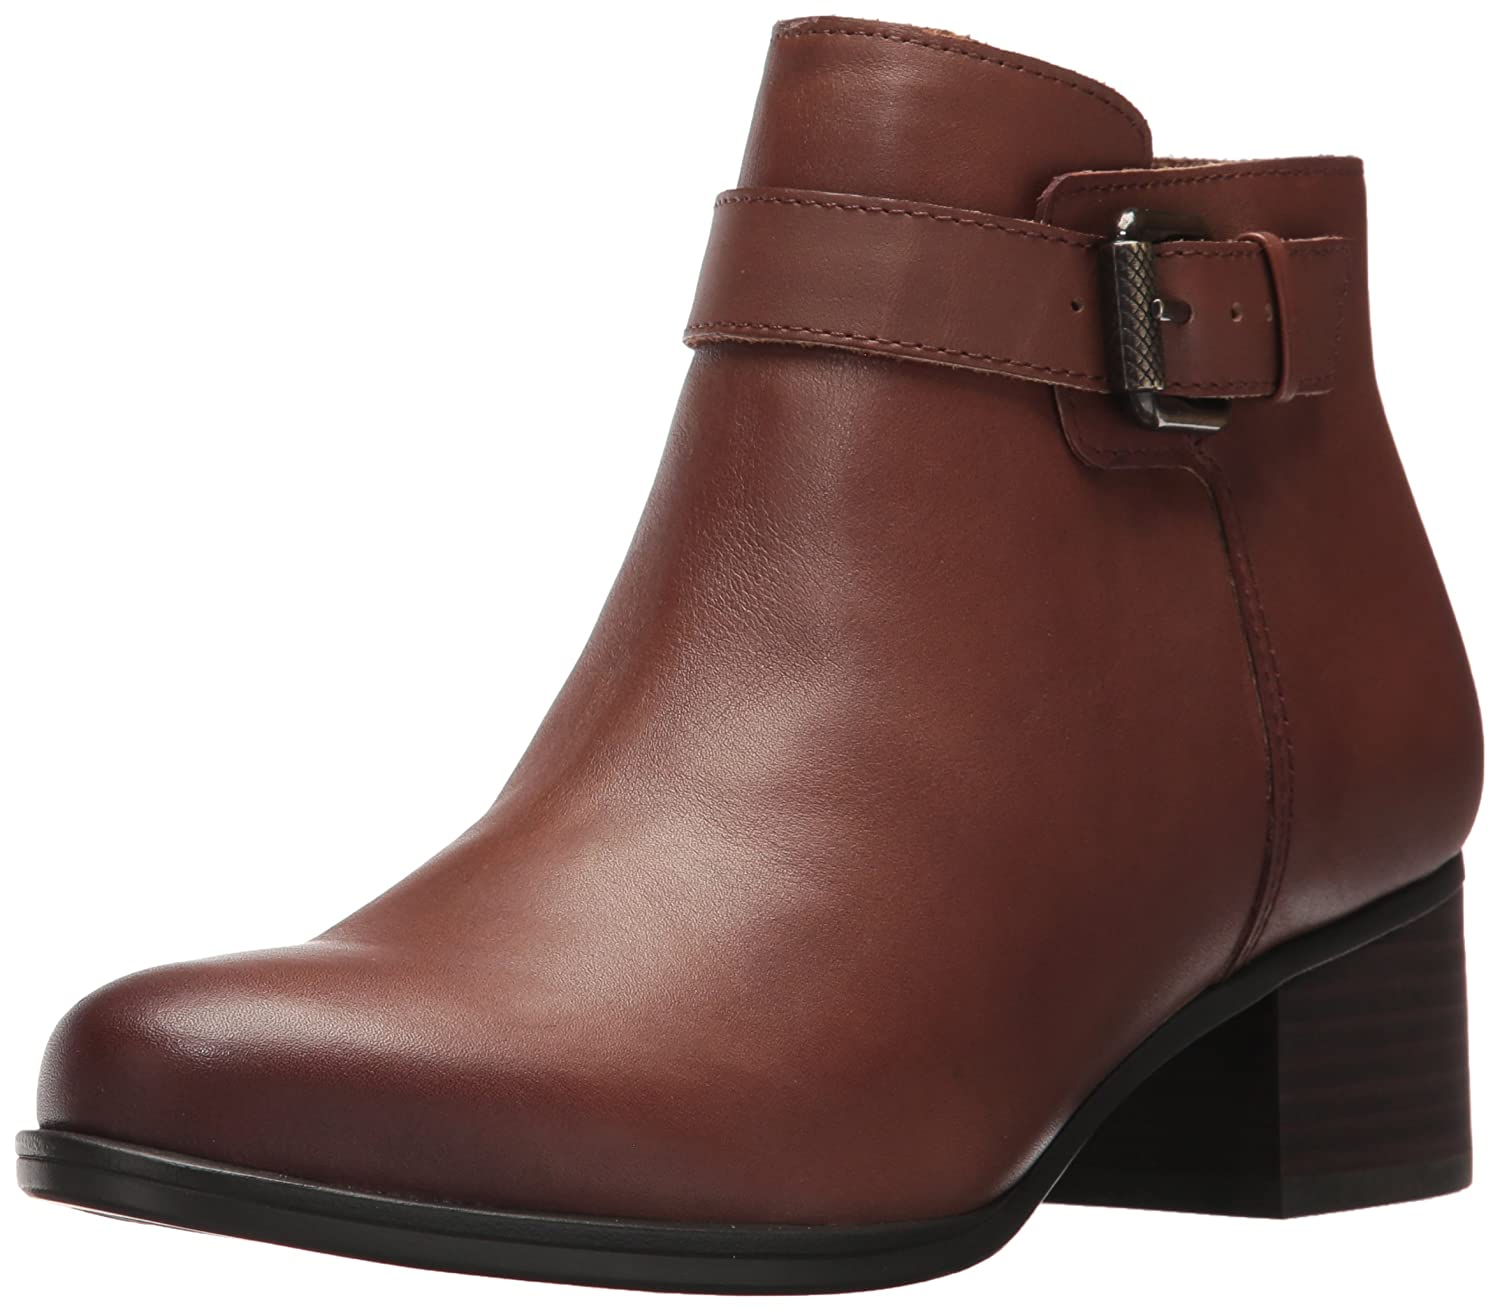 Naturalizer Women's Dora Ankle Bootie B06VVV7Q7L 11 W US|Coffee